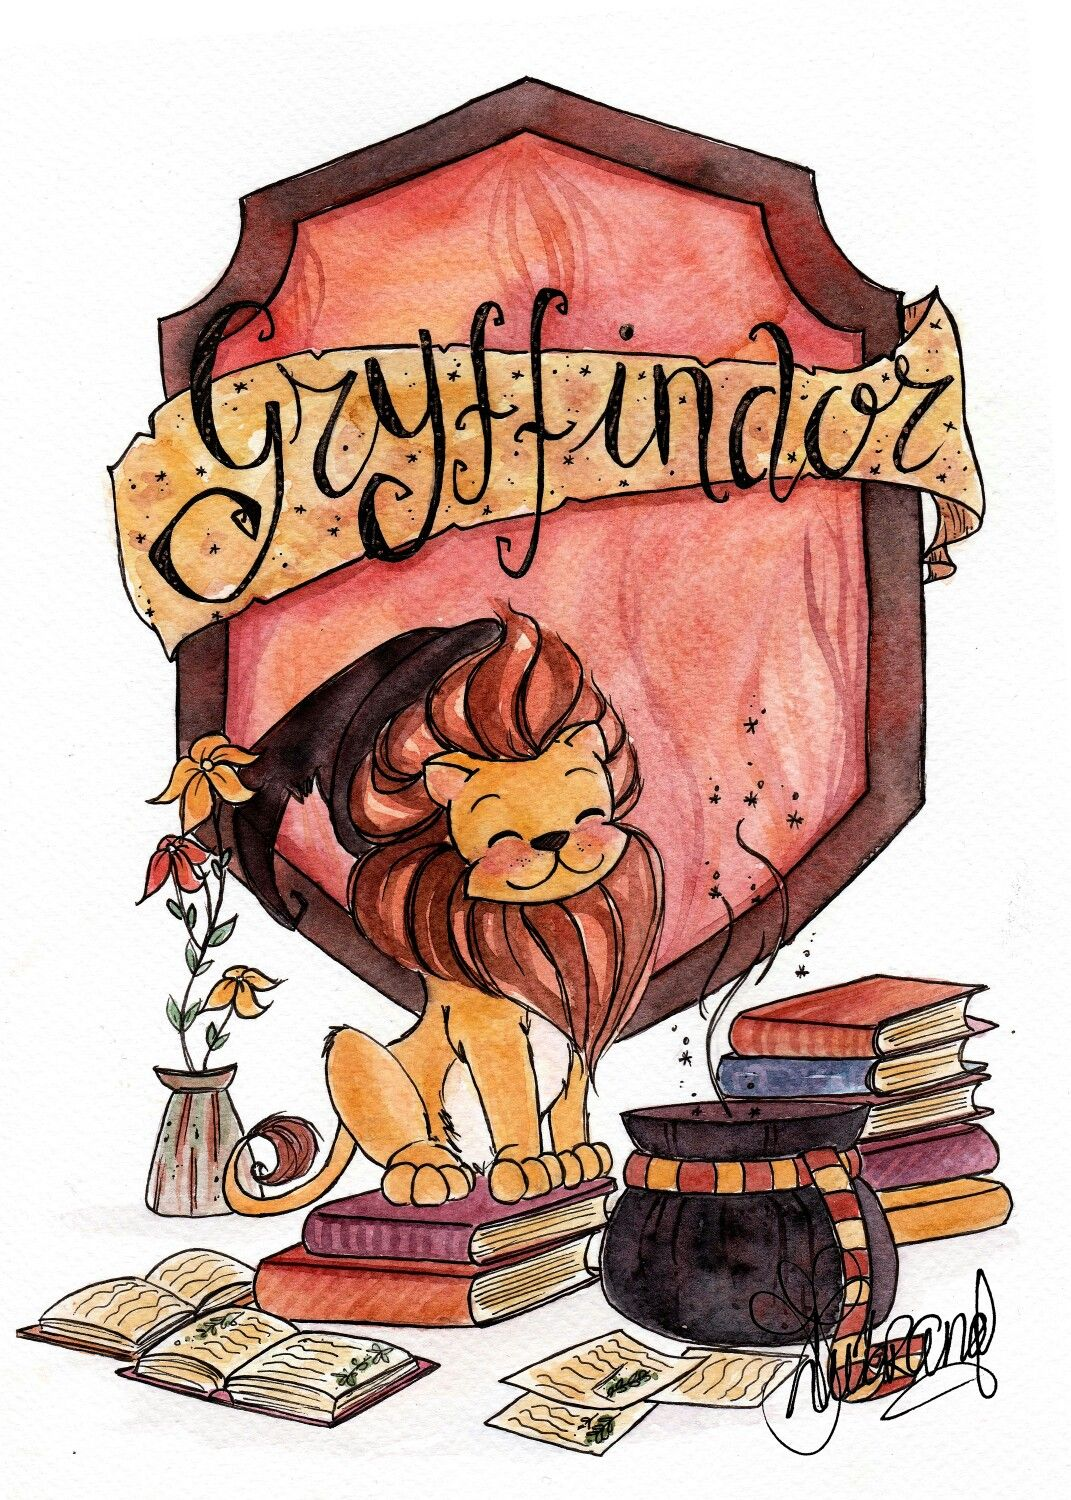 Gryffindor harry potter harry potter fandom harry potter memes harry potter houses - Harry potter dessin ...